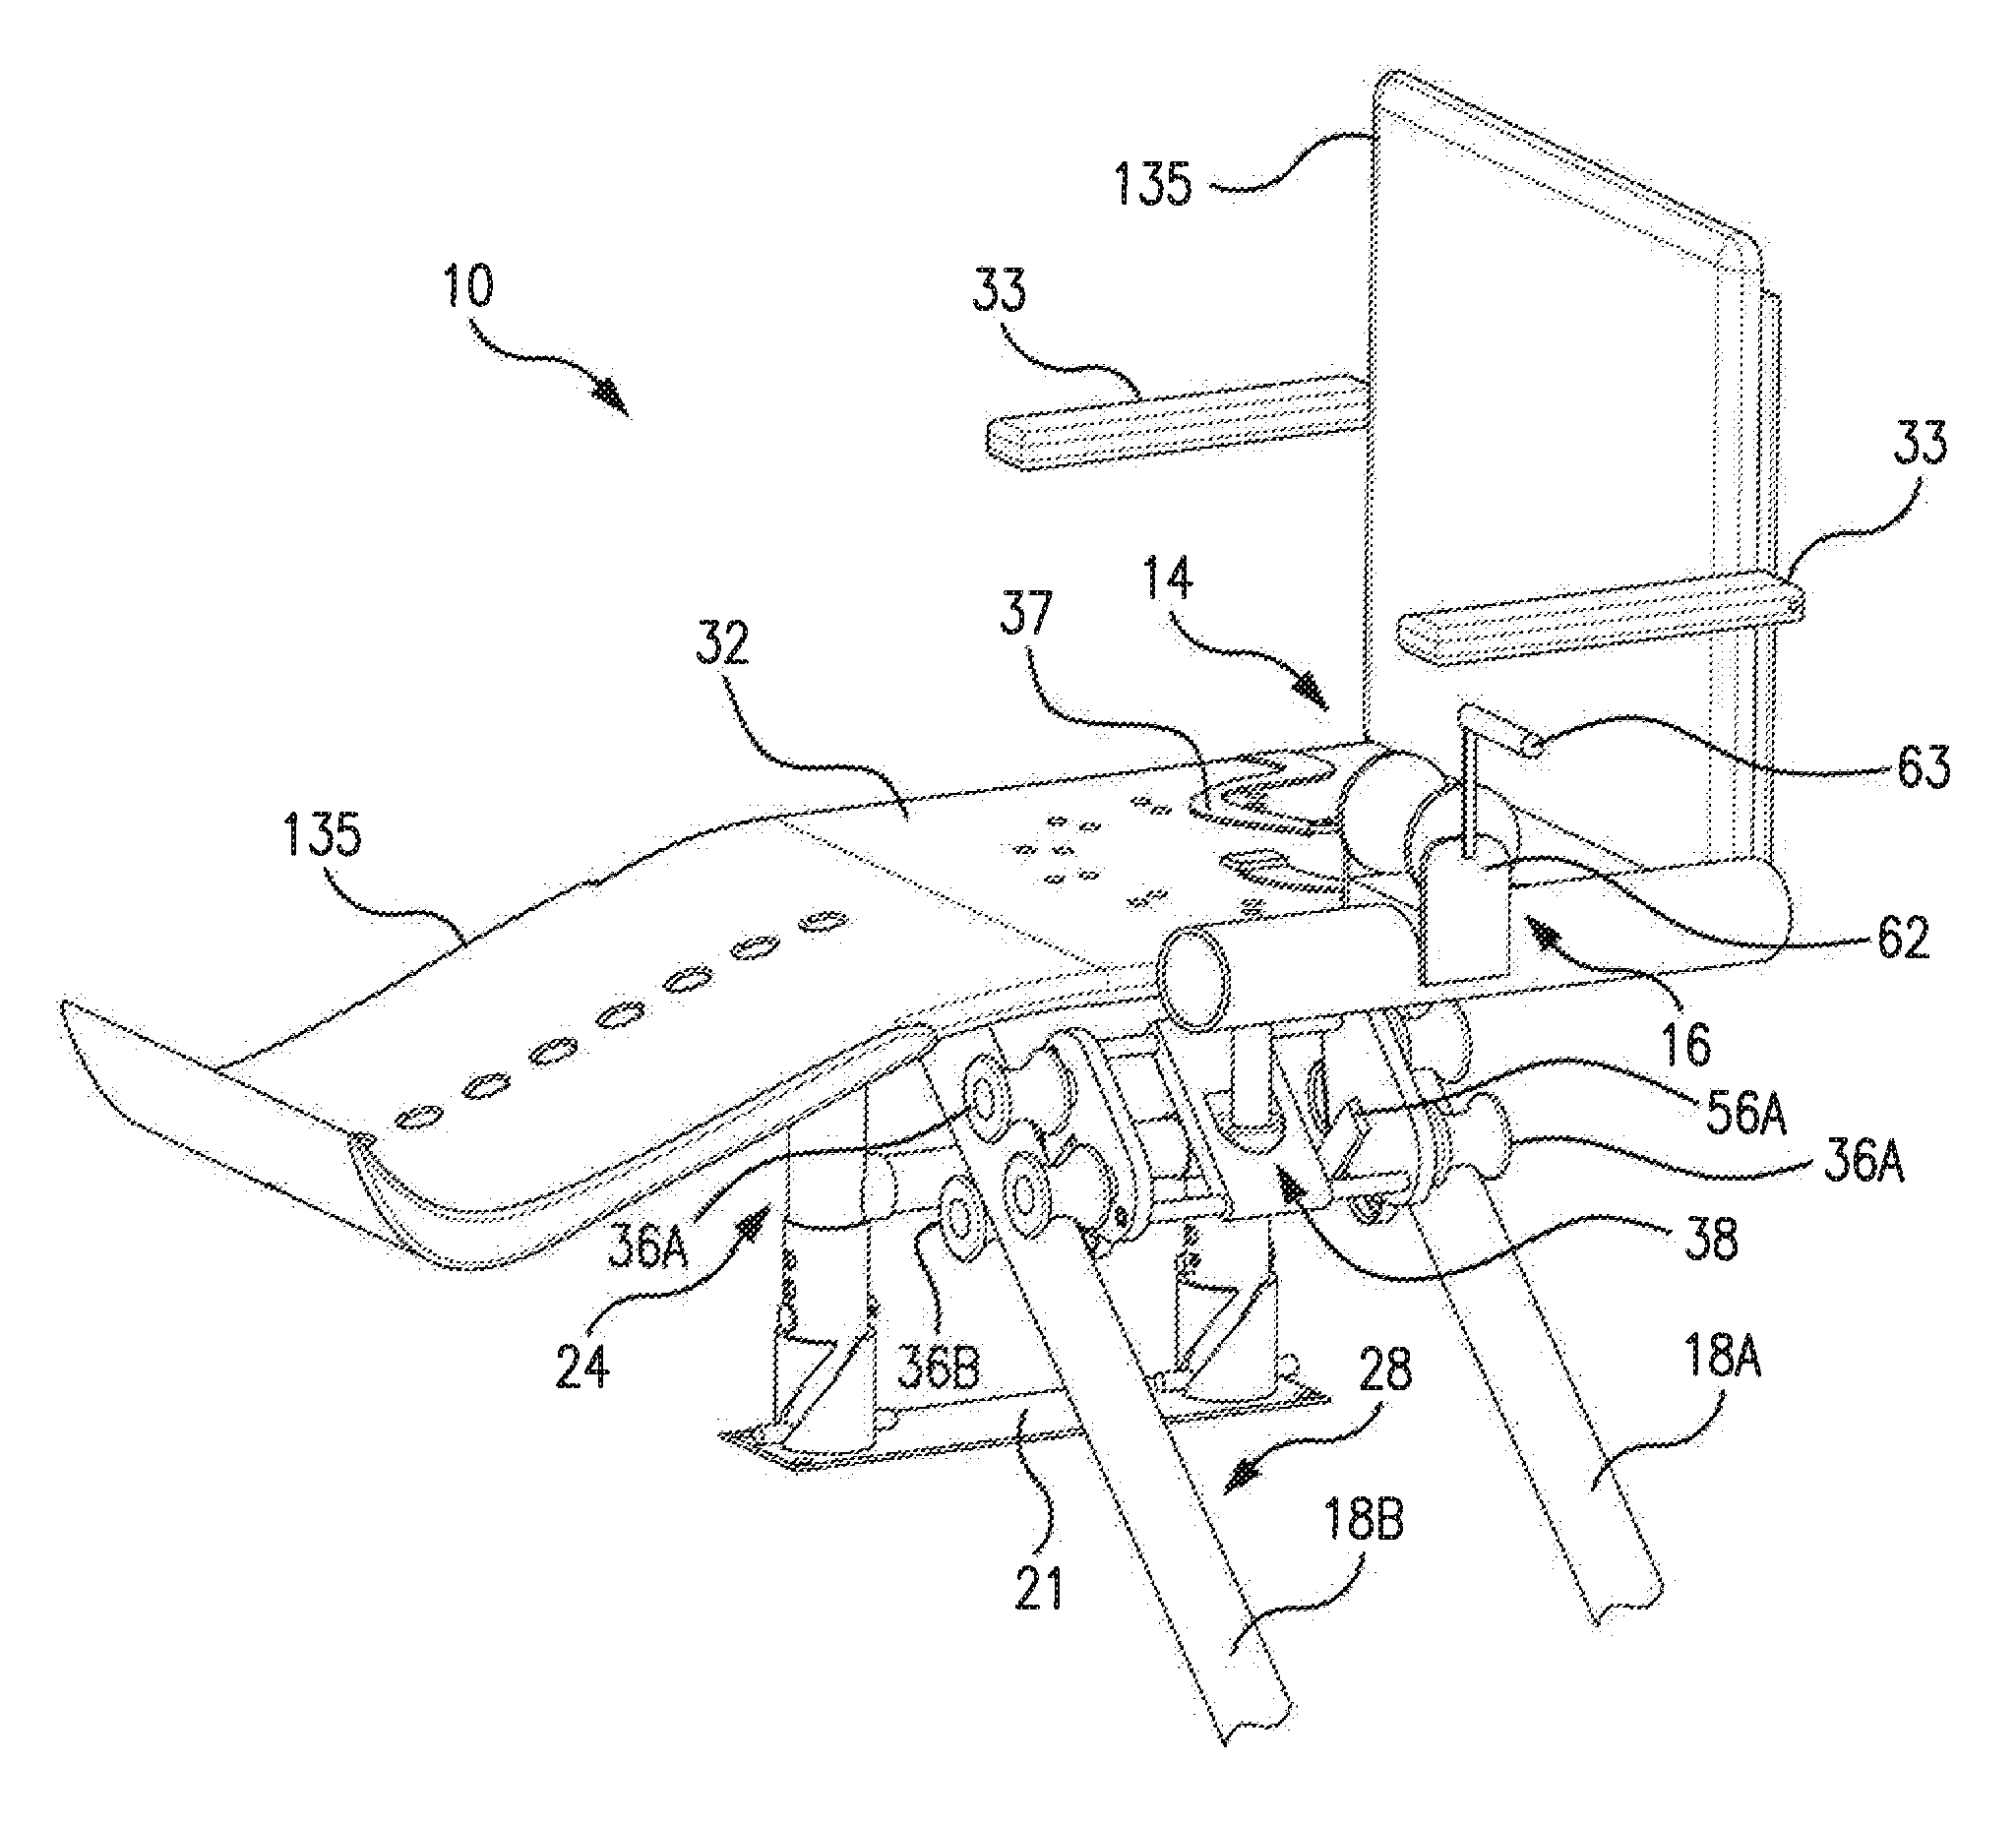 Assistance Device For Entering And Exiting A Swimming Pool Figure 1